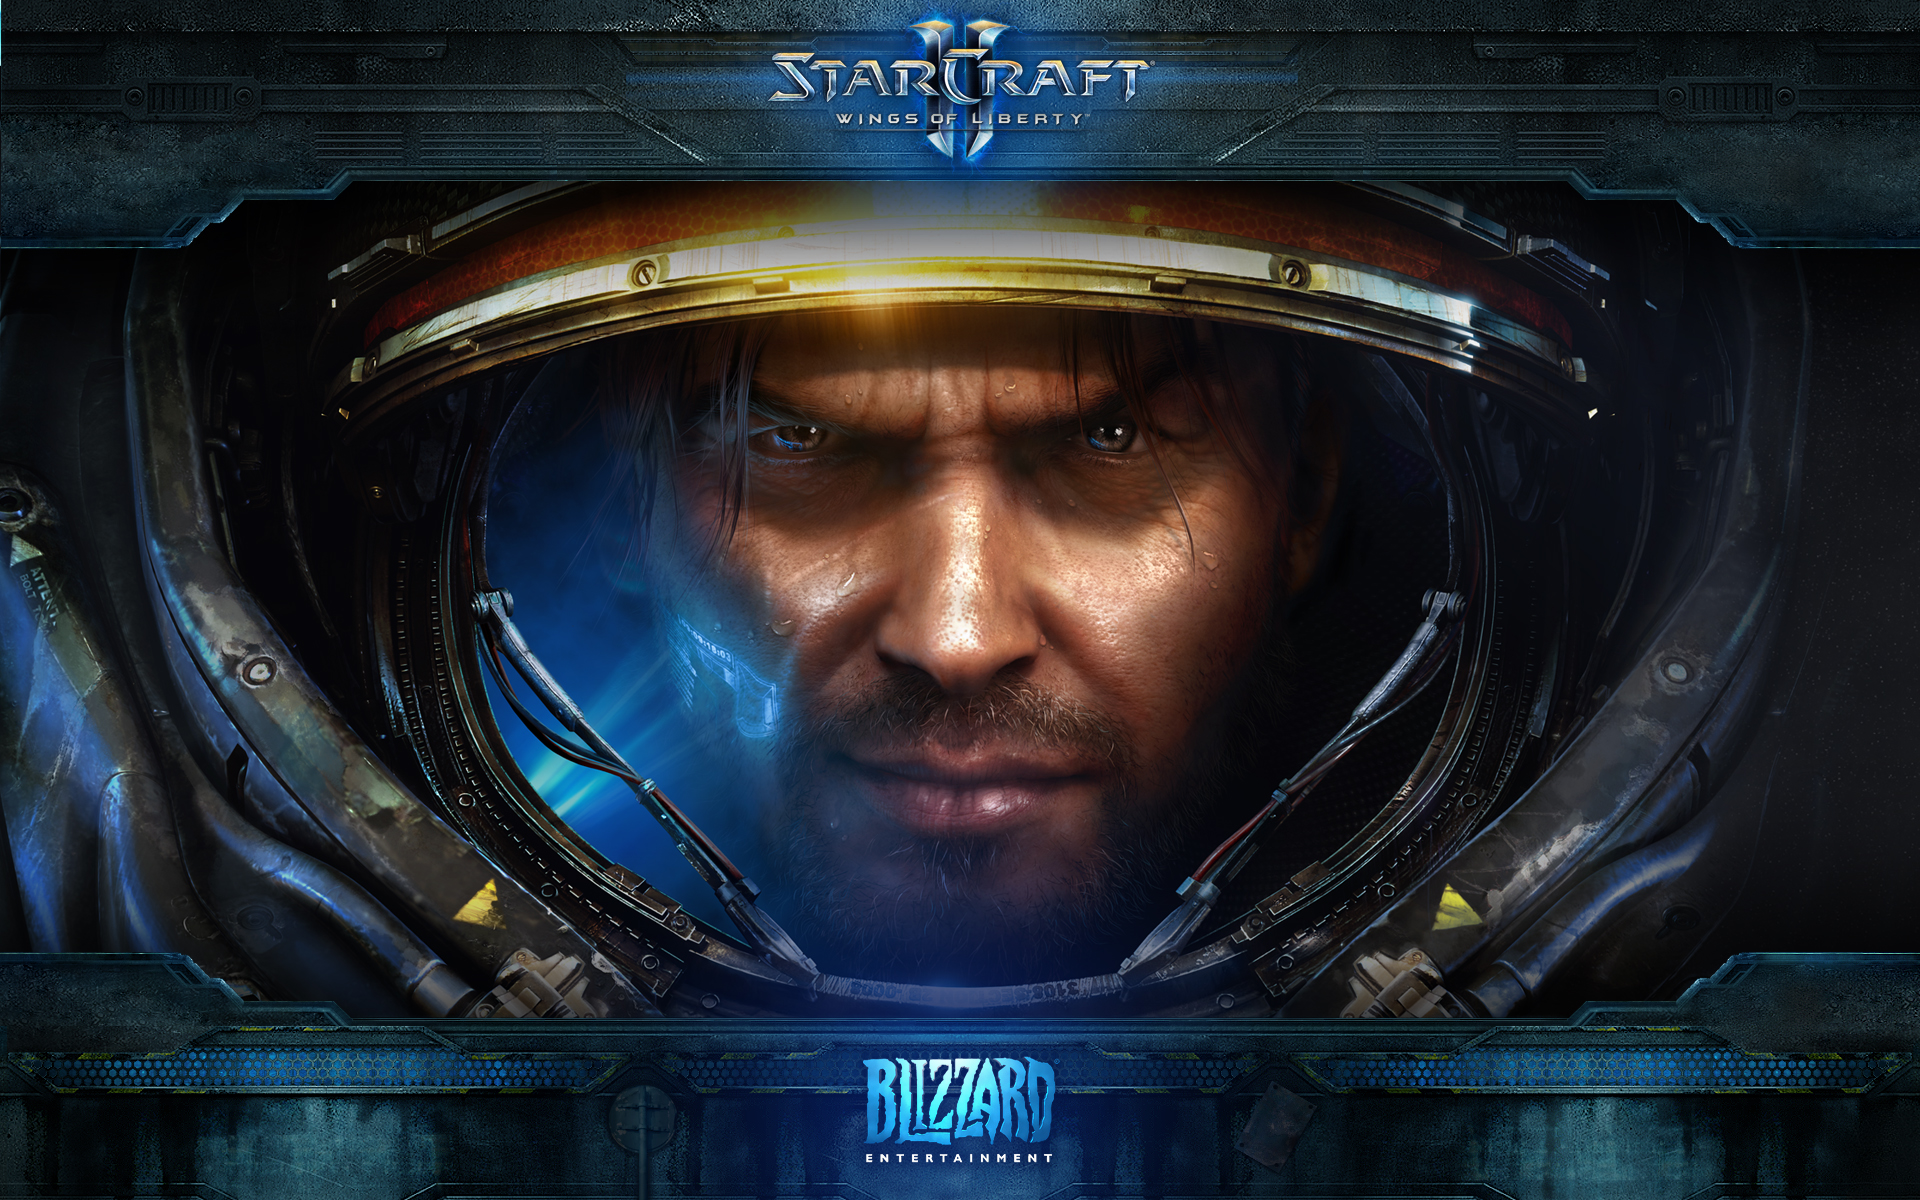 starcraft wallpaper - photo #36